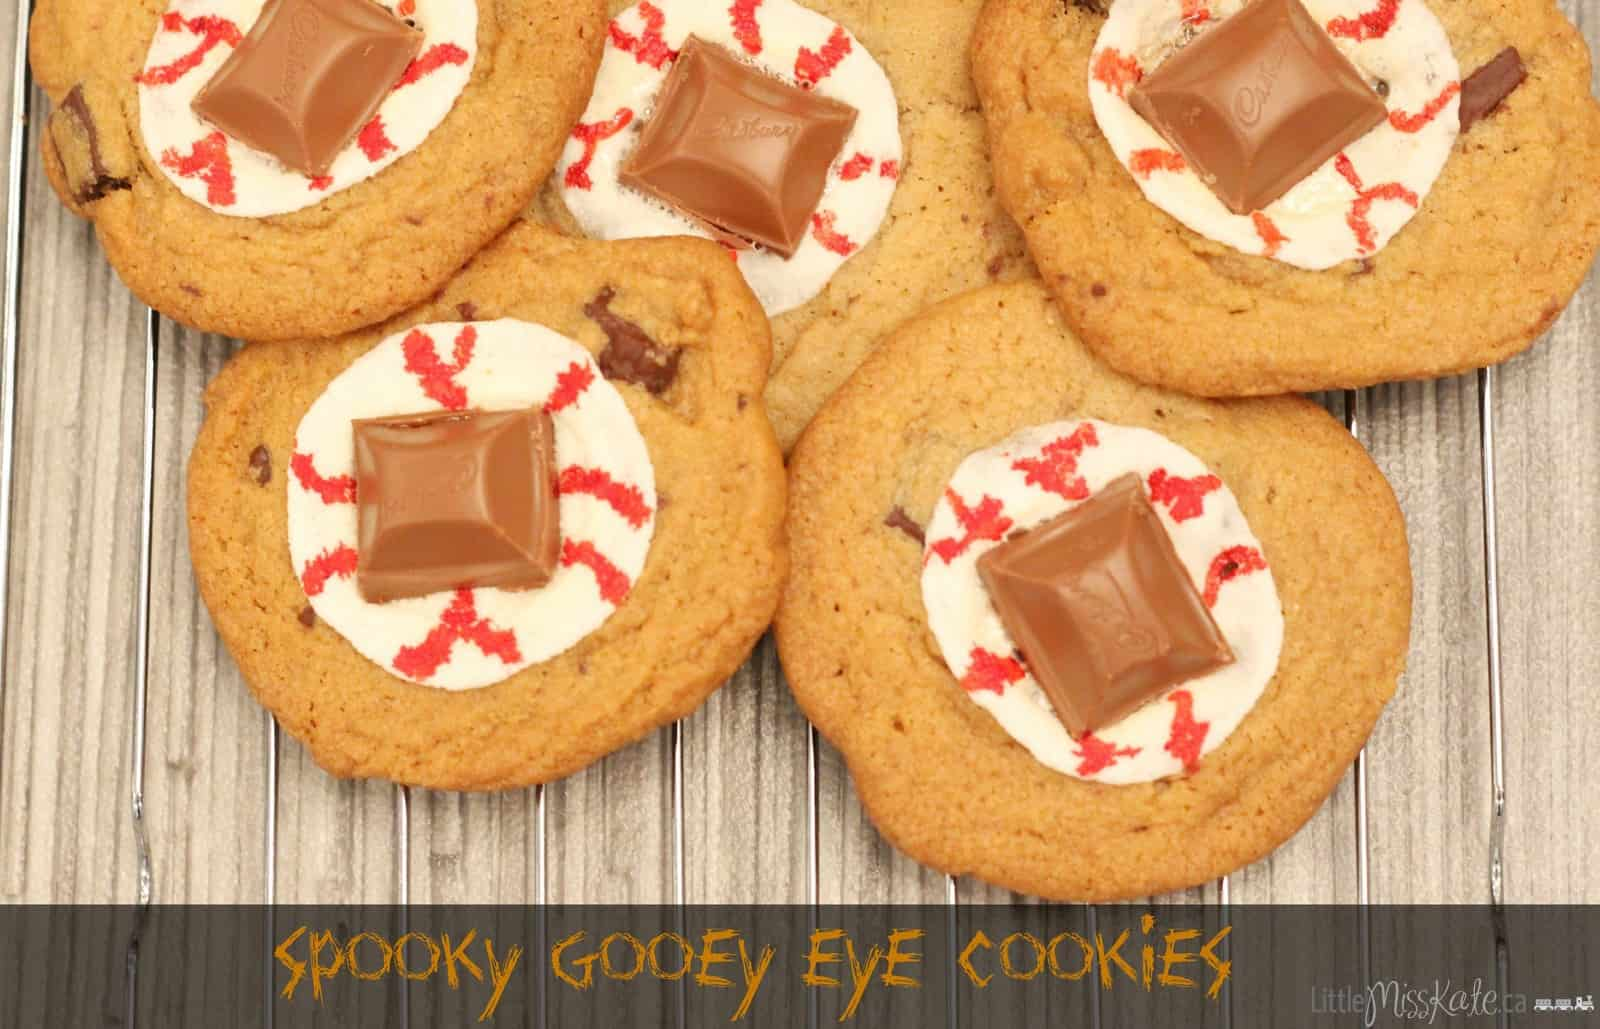 Halloween dessert idea spooky gooey eye cookies